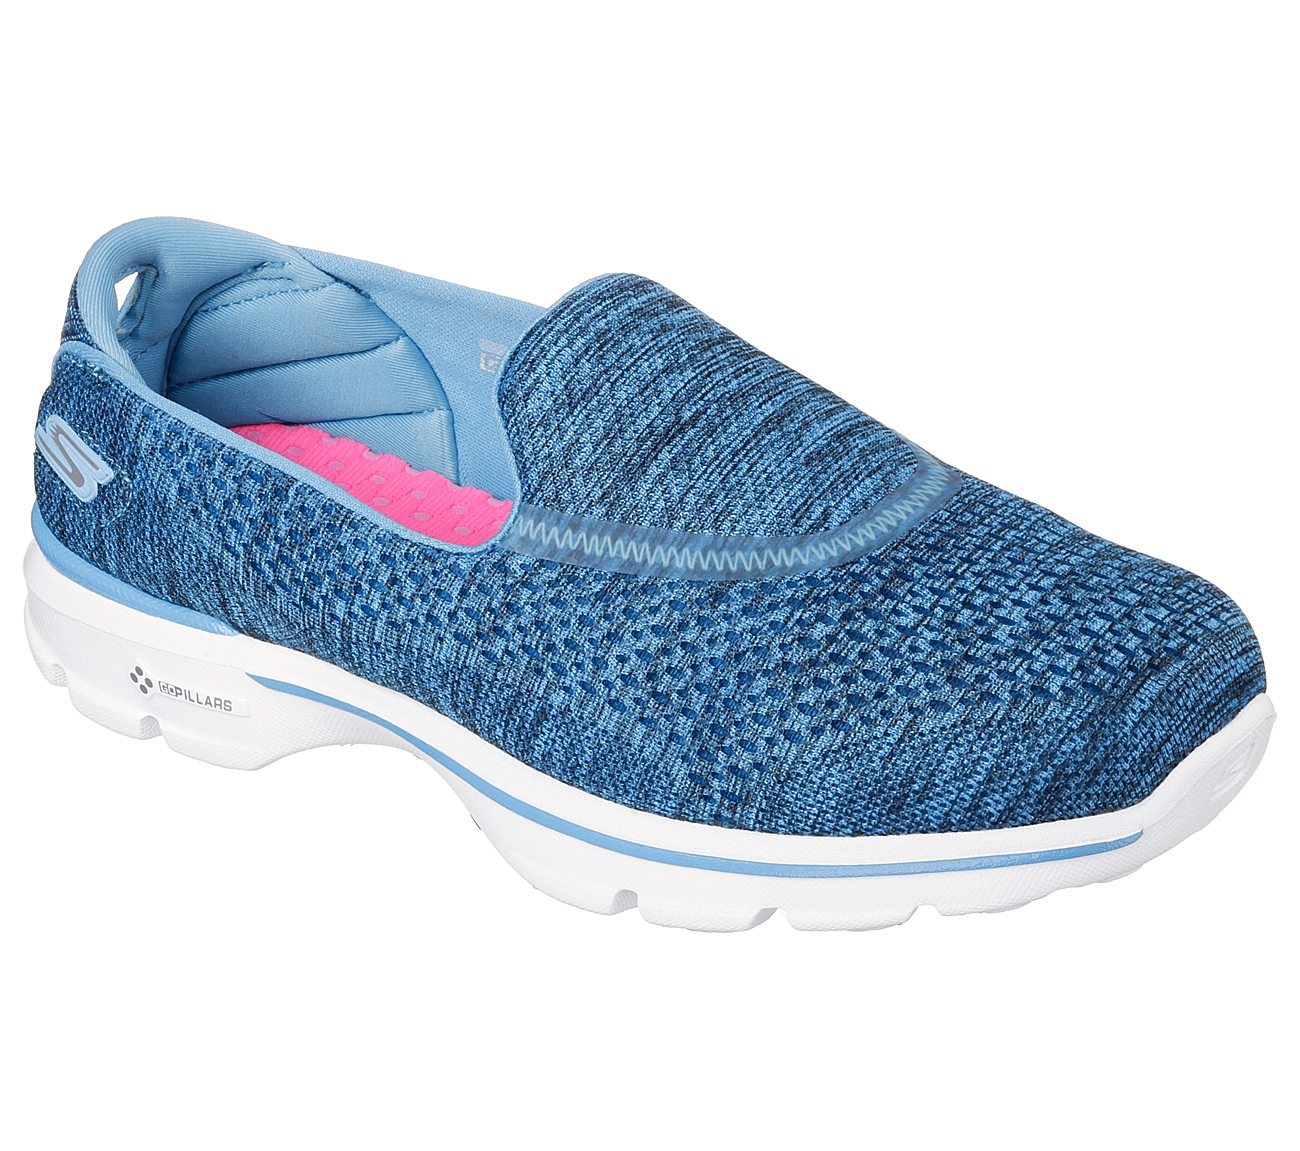 Buy SKECHERS Skechers GOwalk 3 - Renew